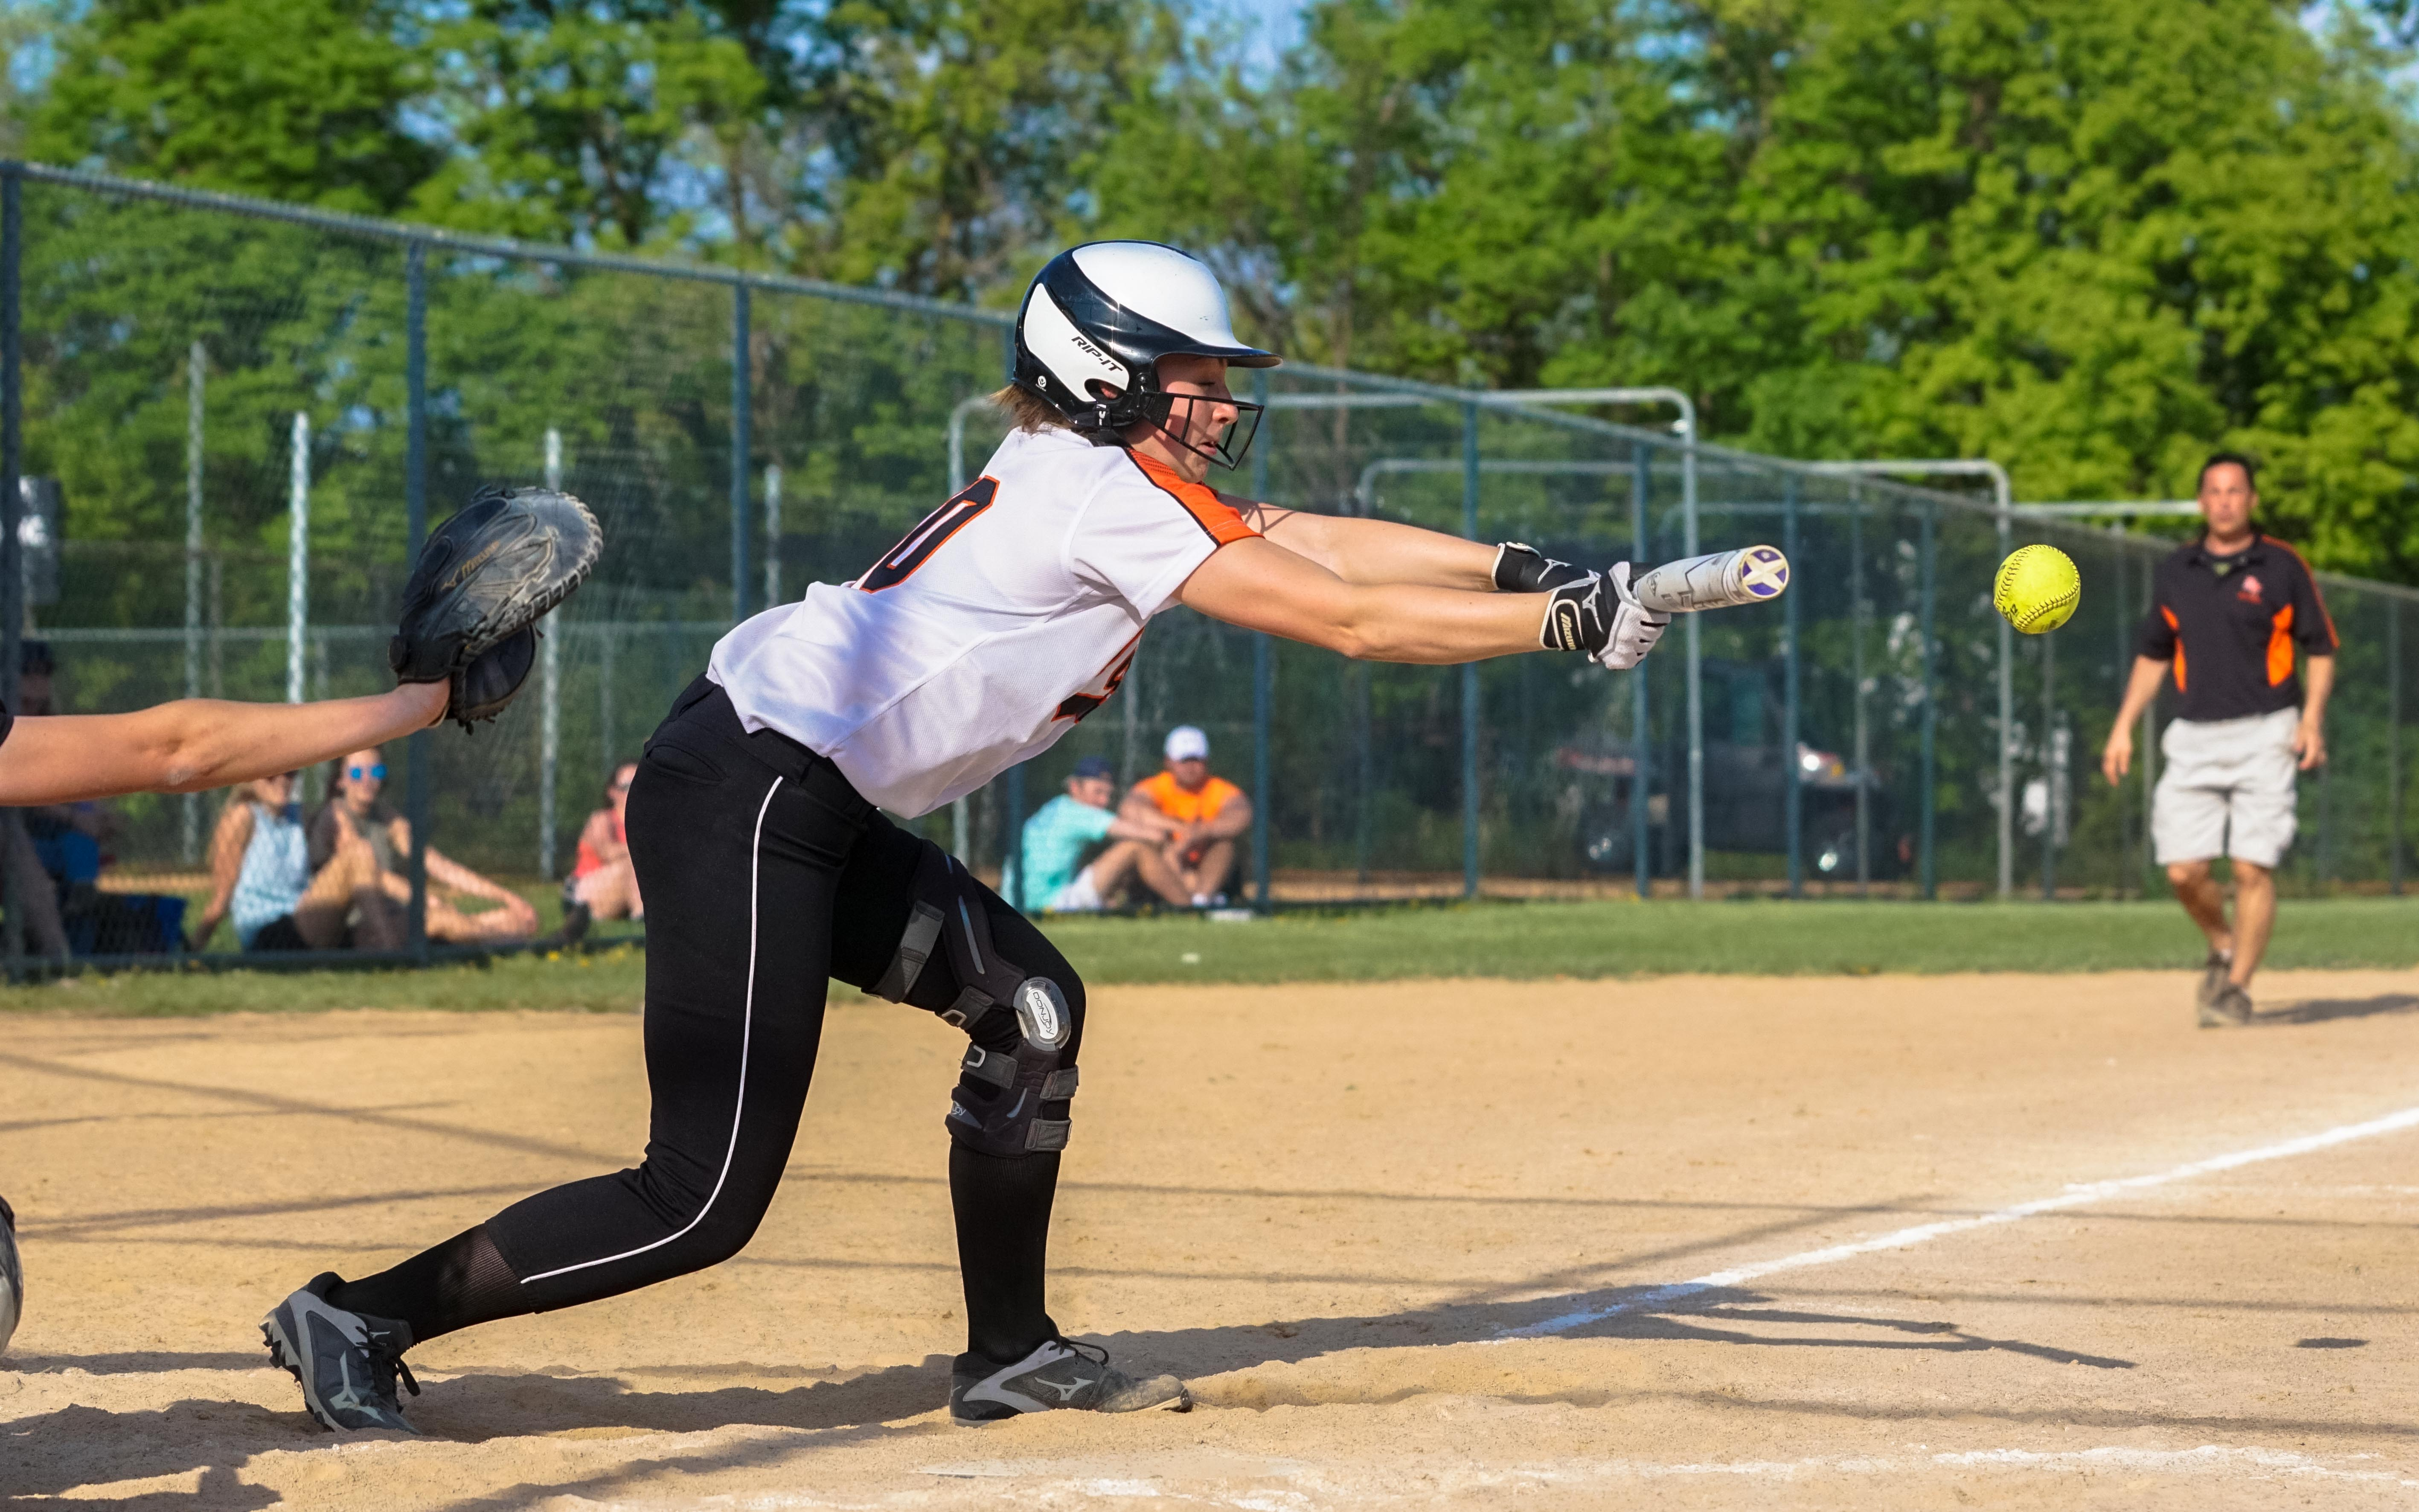 Delano's Claudia Schüler with a bases-loaded bunt Friday to score one of three runs for Delano in its victory over Waconia. Photo by Korey McDermott, SportsEngine